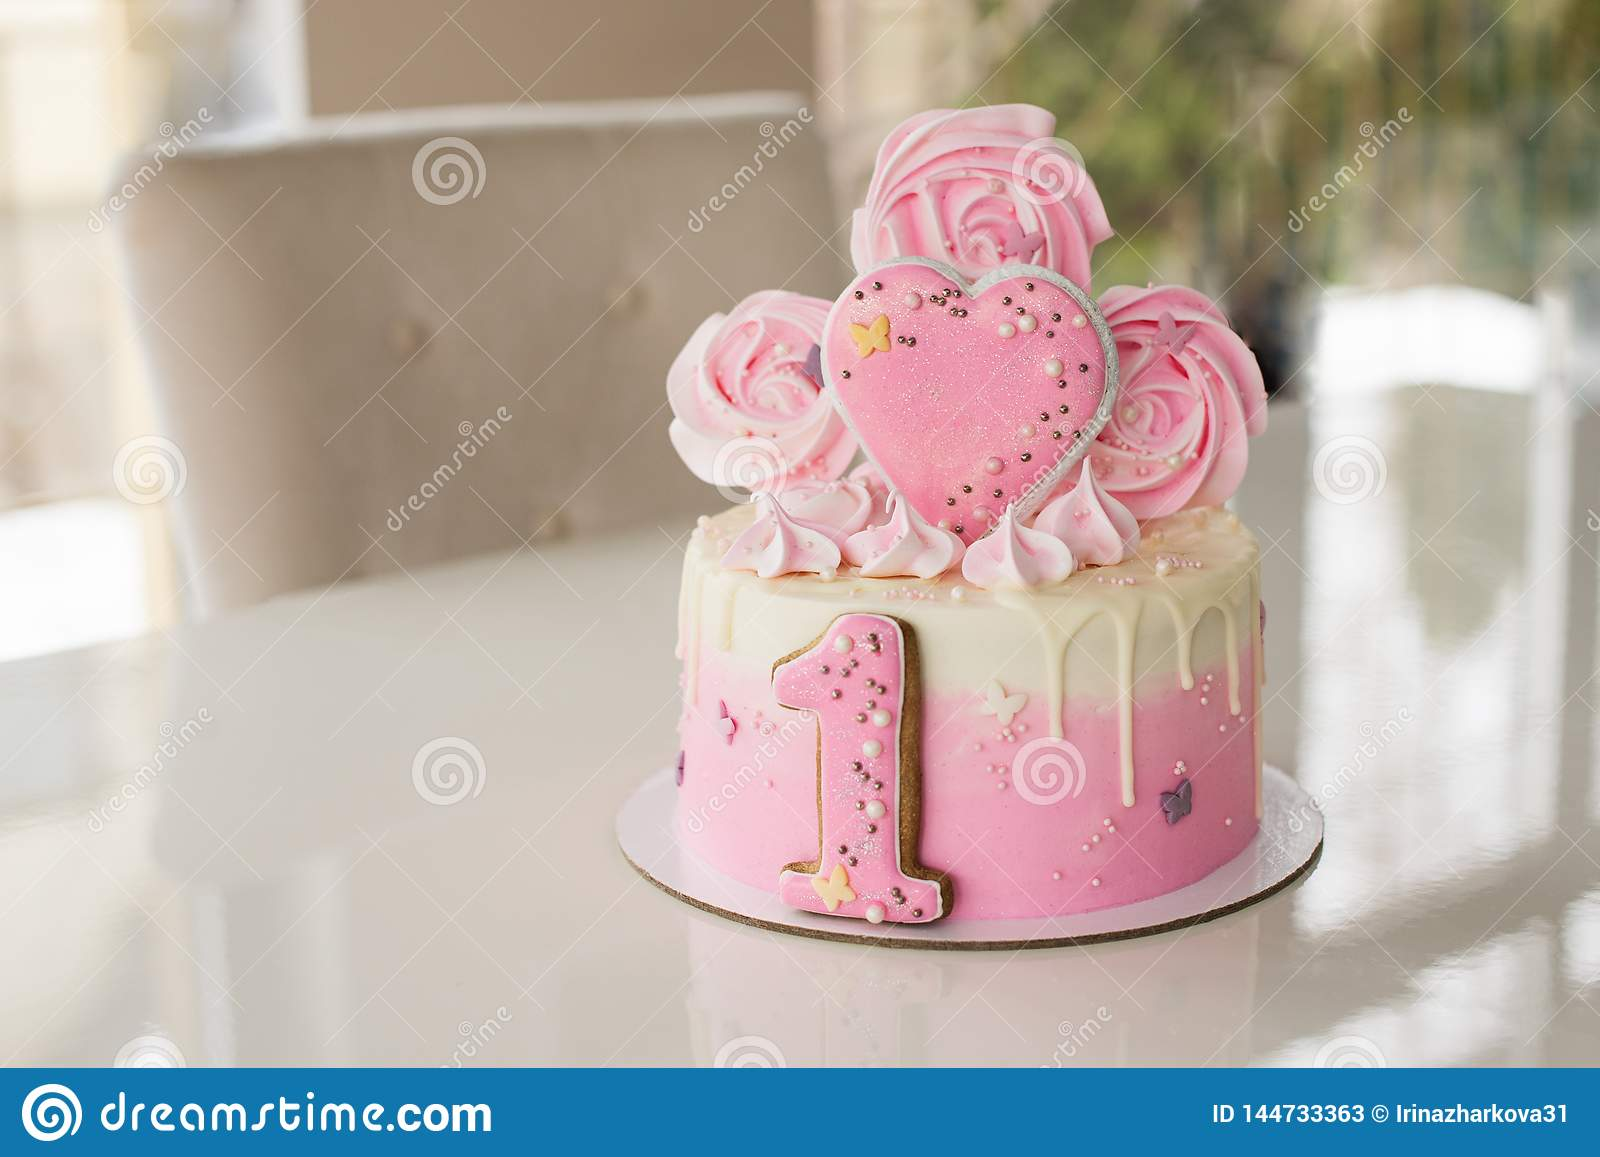 Enjoyable Crash Pink Cake At The Celebration Of The First Birthday Of The Funny Birthday Cards Online Alyptdamsfinfo